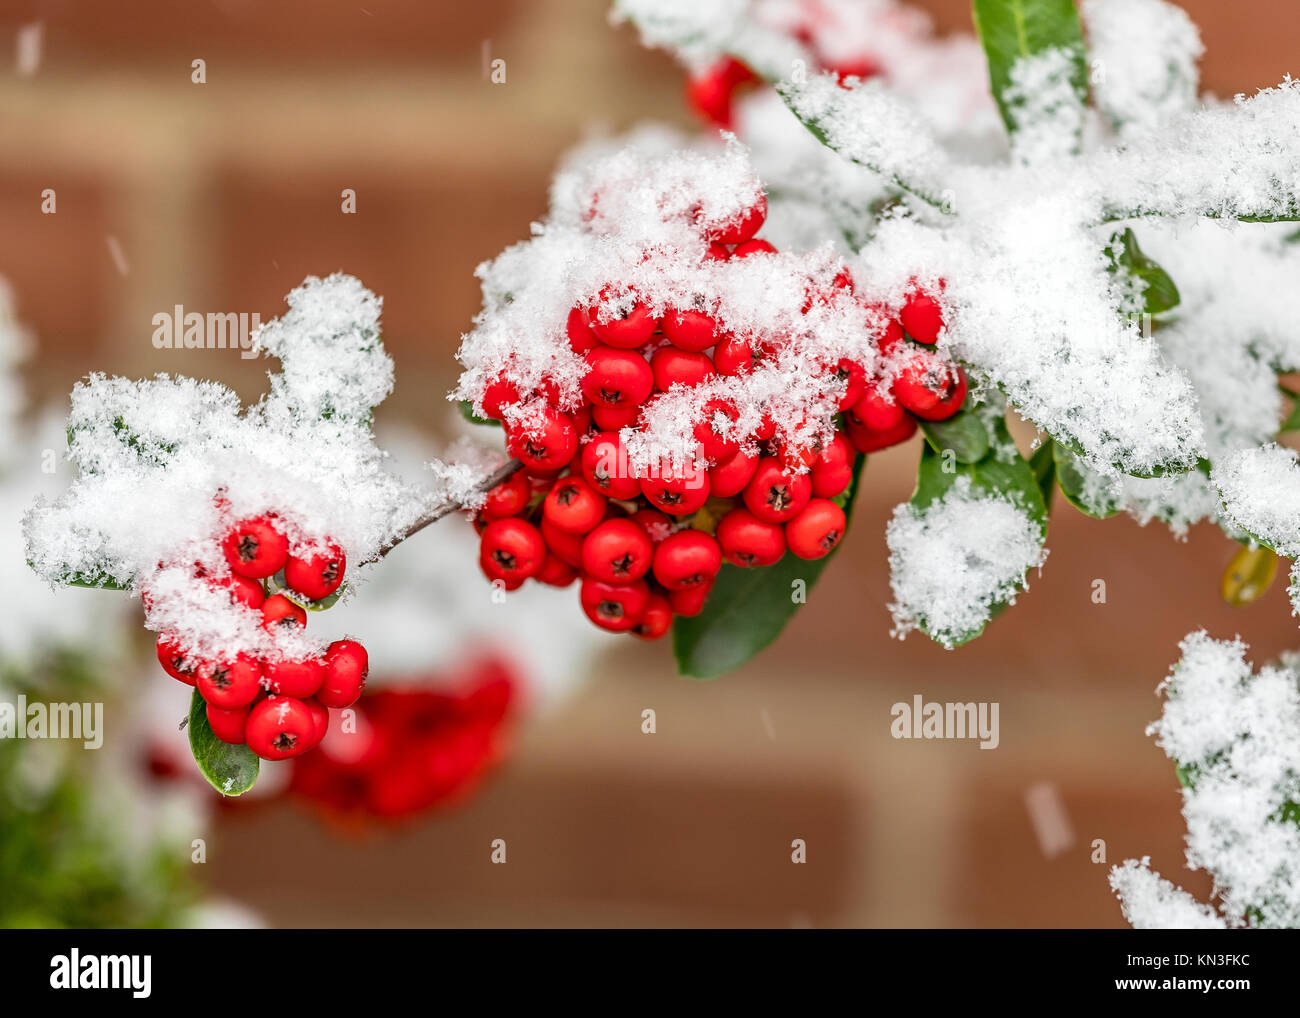 Bunch of rowanberries covered by snow - Stock Image